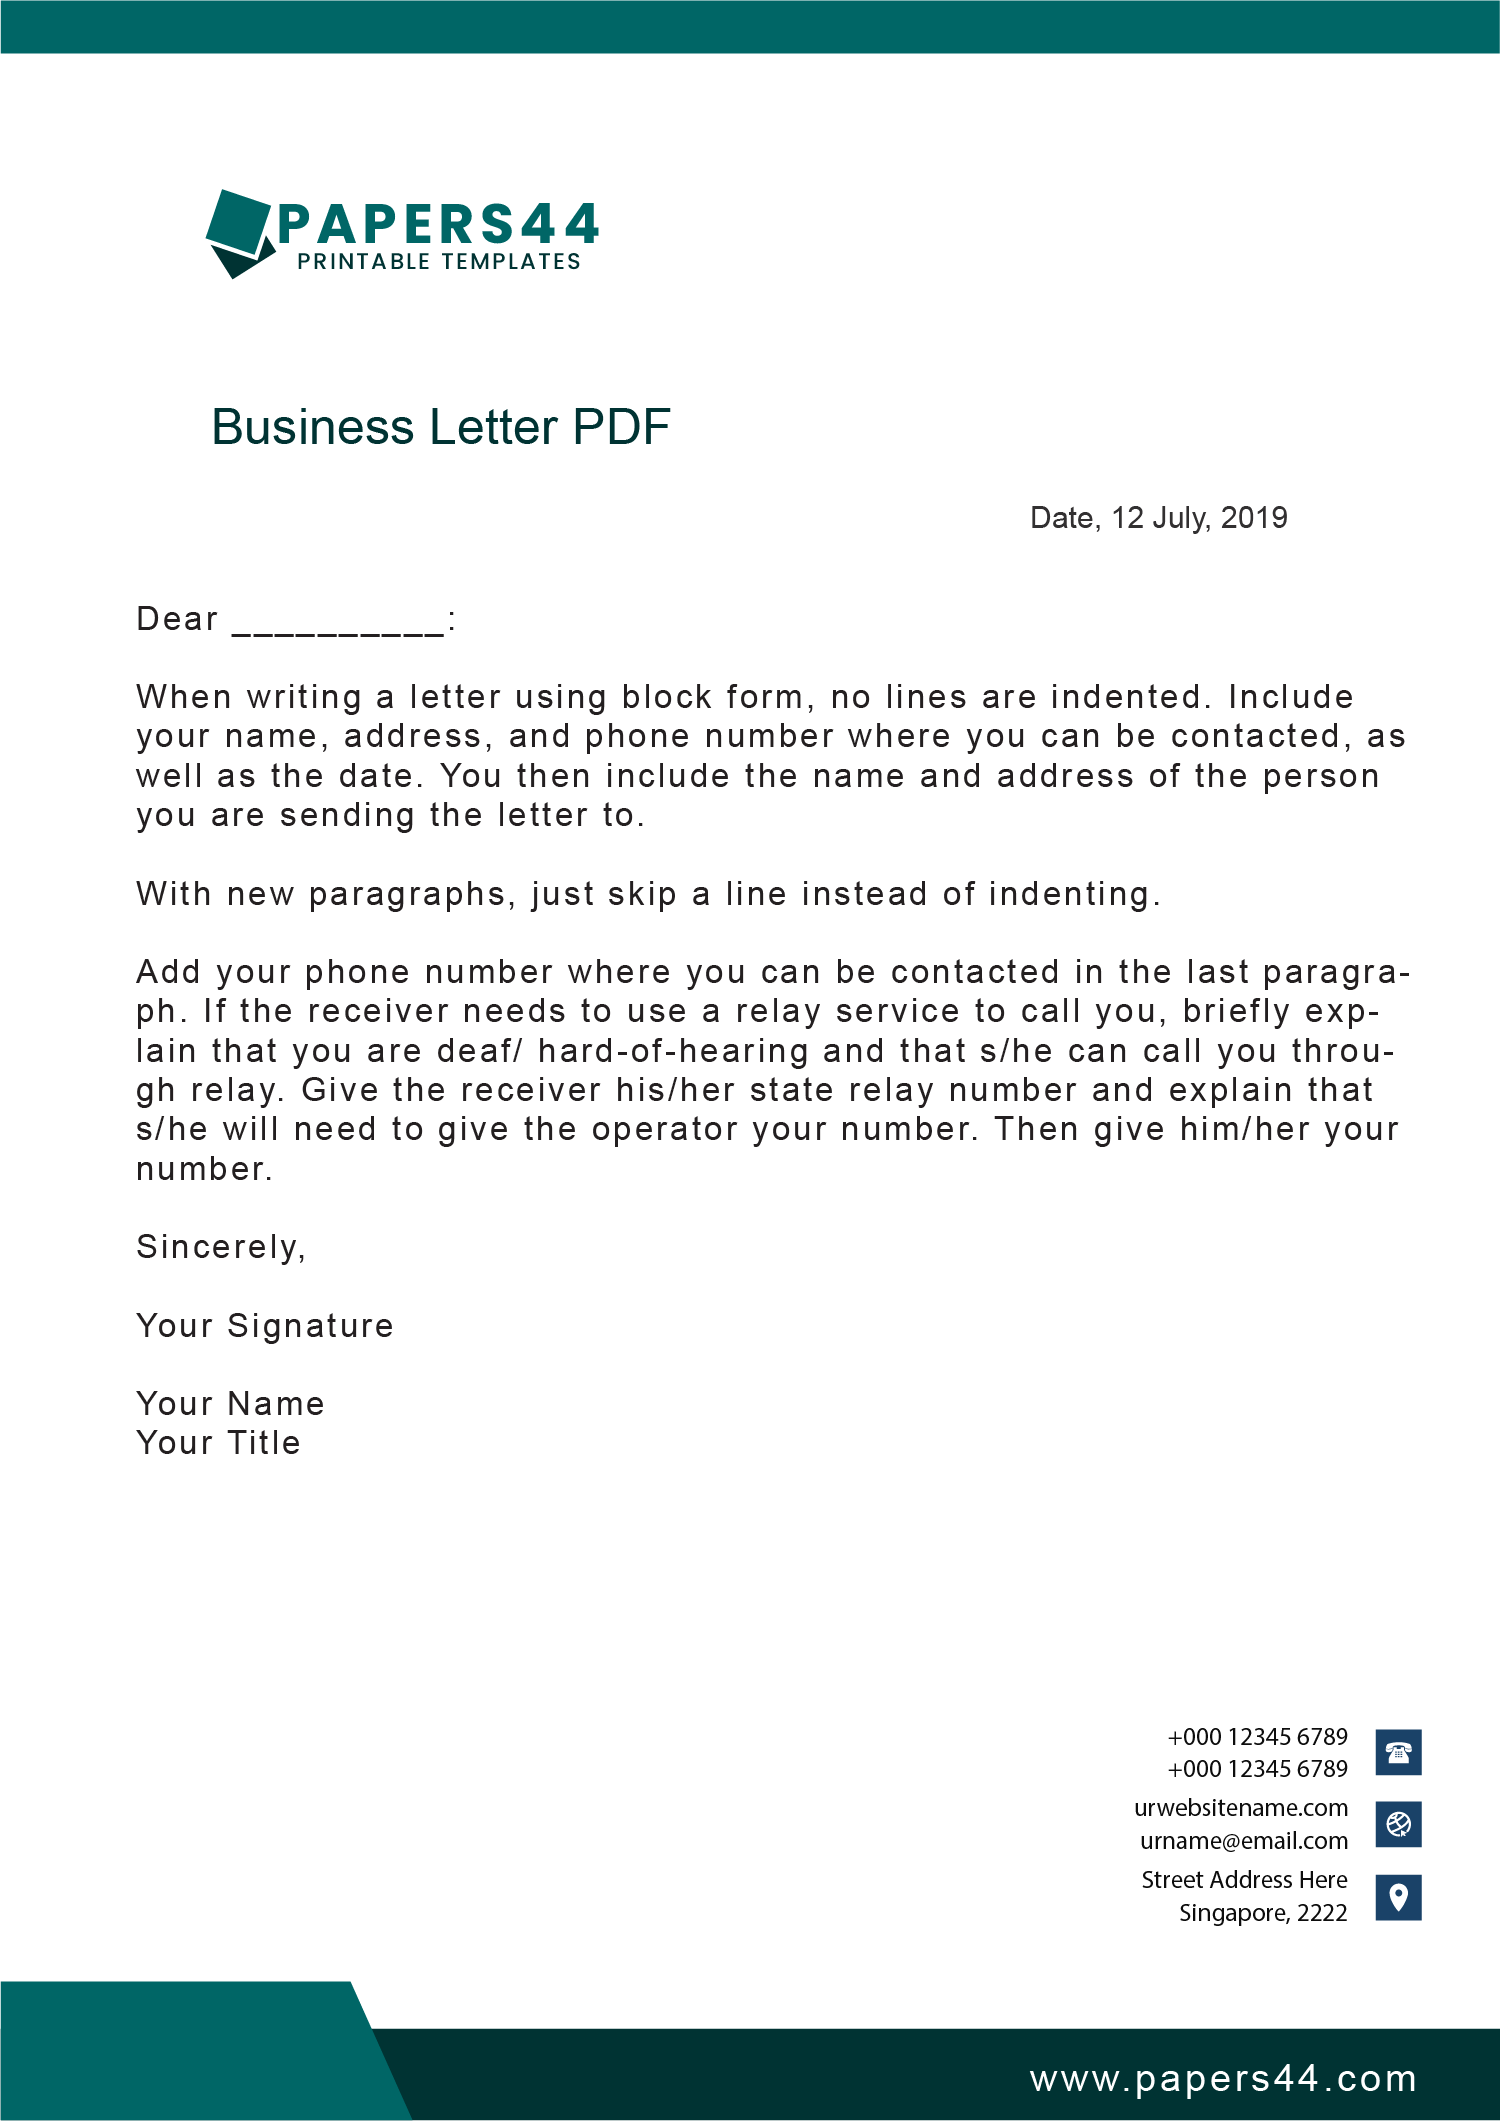 Quality Business Letter Templates